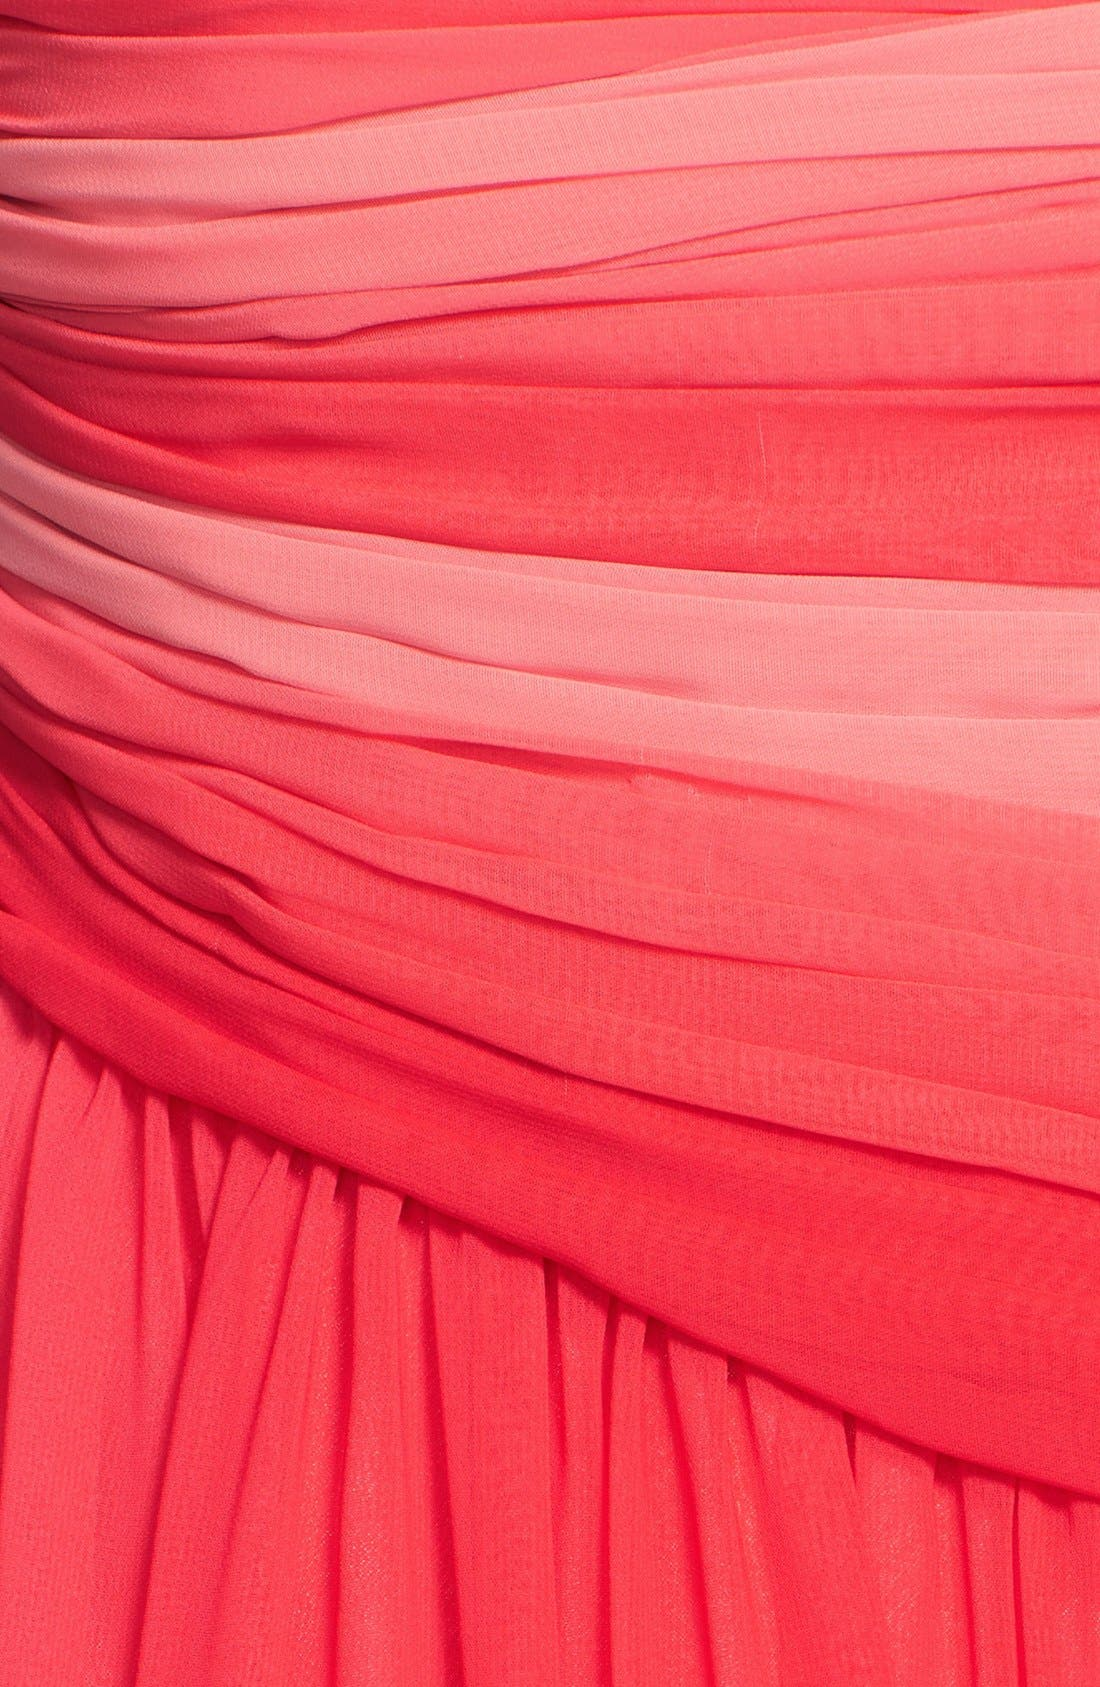 Alternate Image 3  - ML Monique Lhuillier Bridesmaids Ombré Chiffon Gown